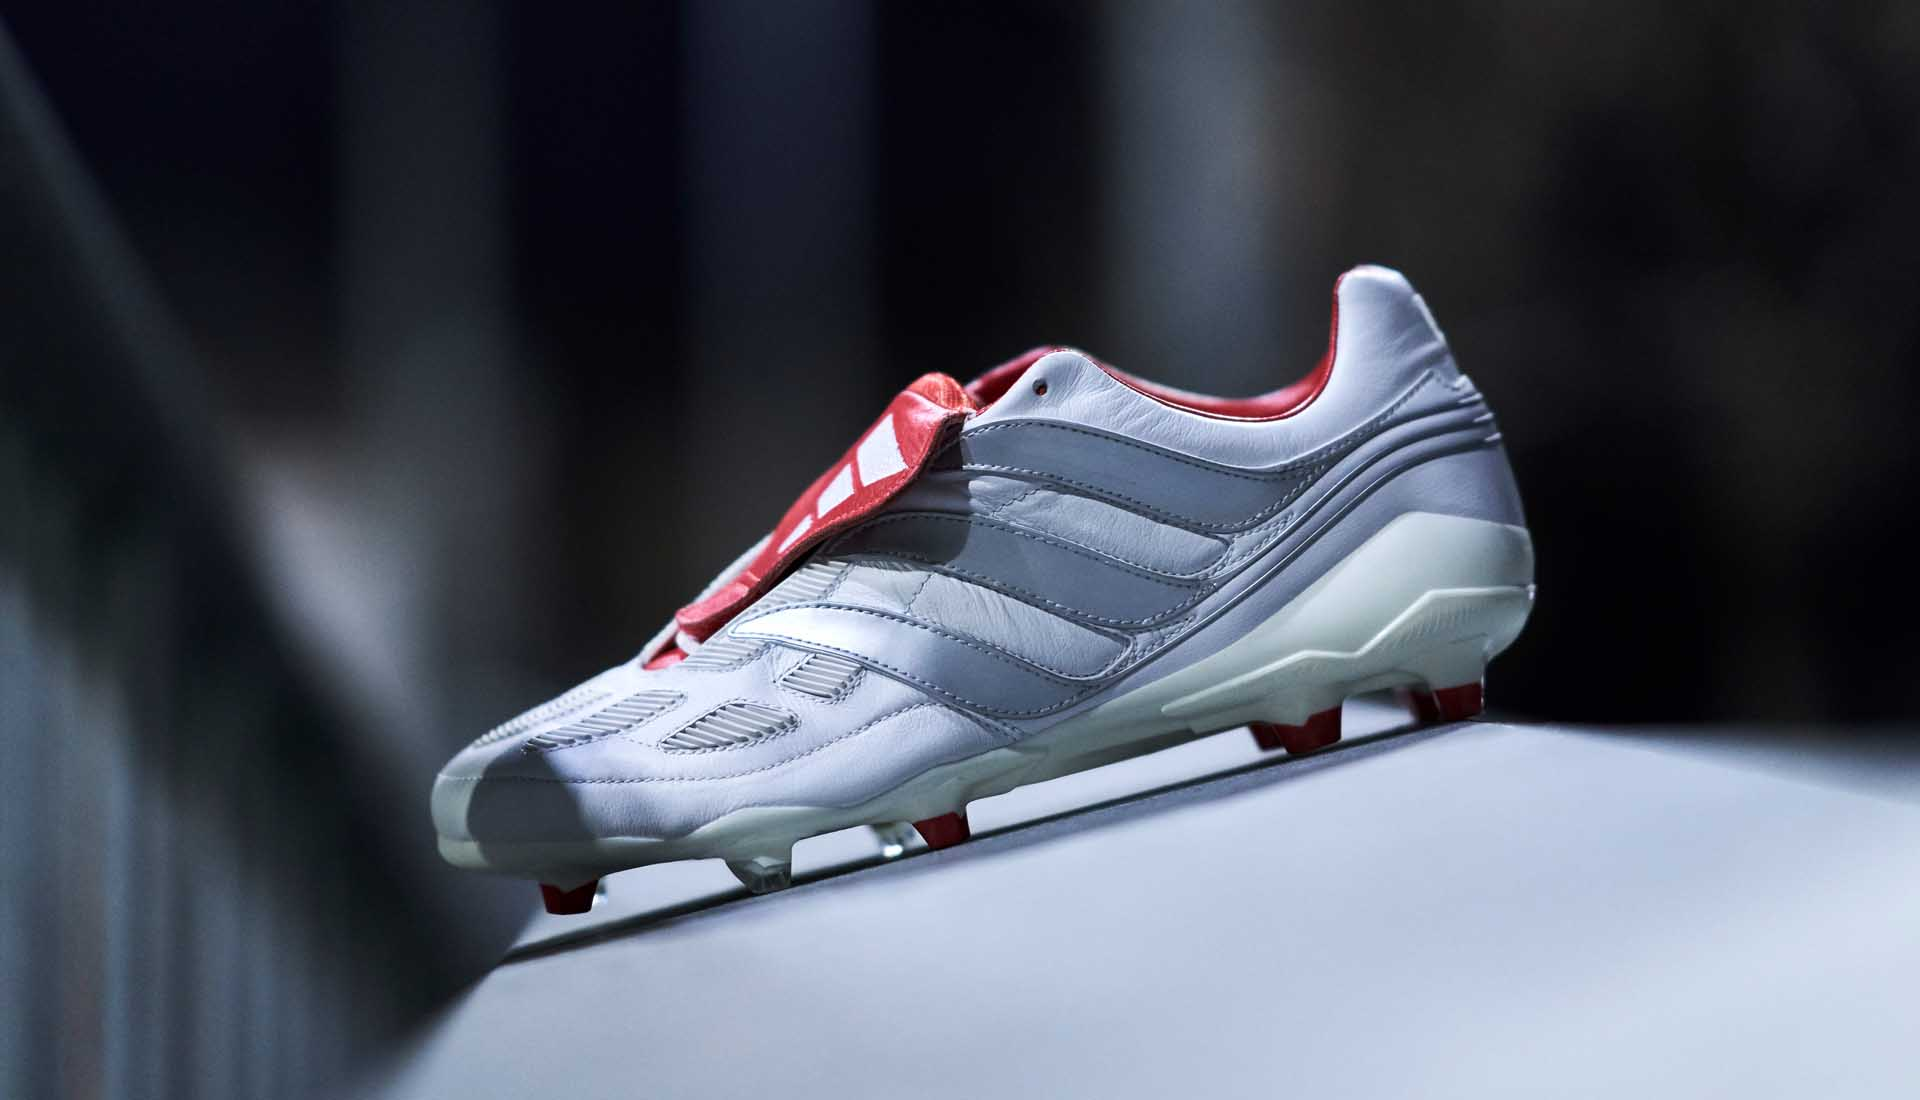 Poderoso Disco Ligeramente  Closer Look at the adidas '25 Years of Predator' Beckham Precision -  SoccerBible